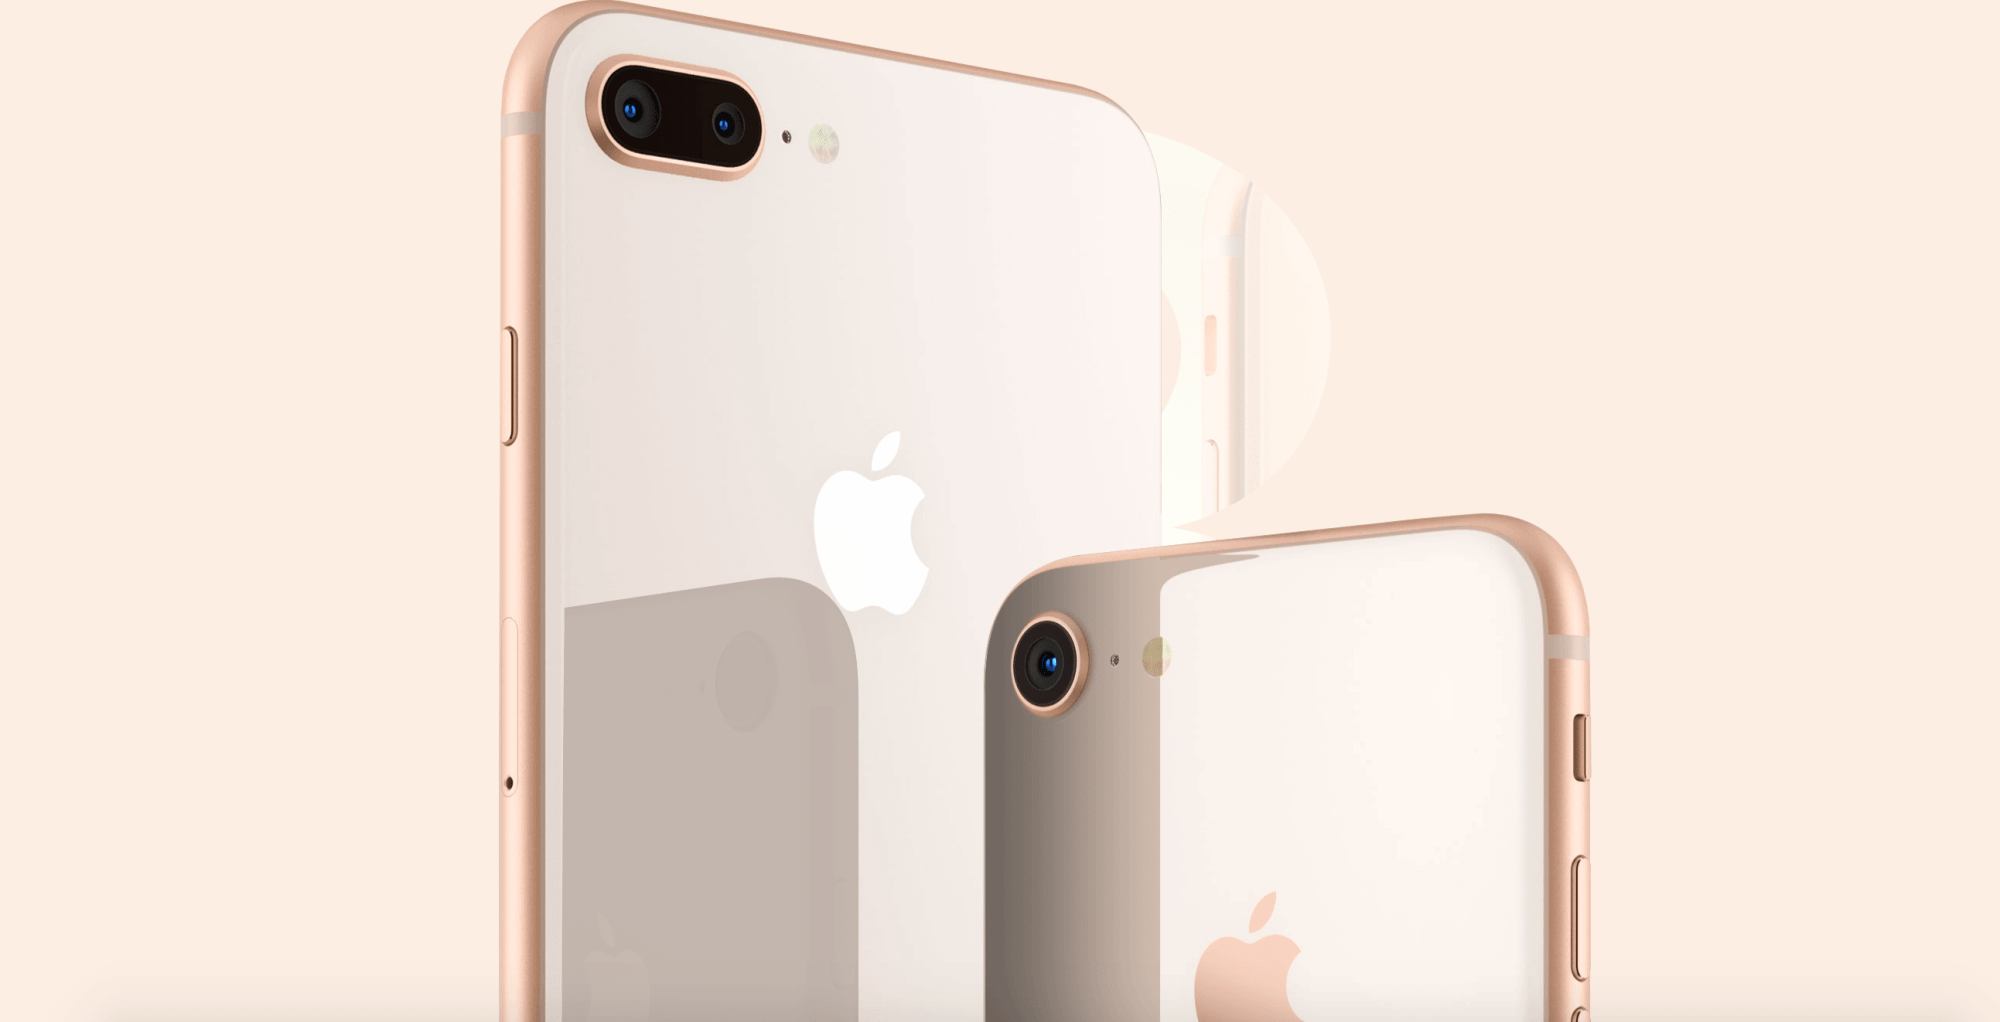 Pré-venda do iPhone 8 e 8 Plus é iniciada pela Vivo